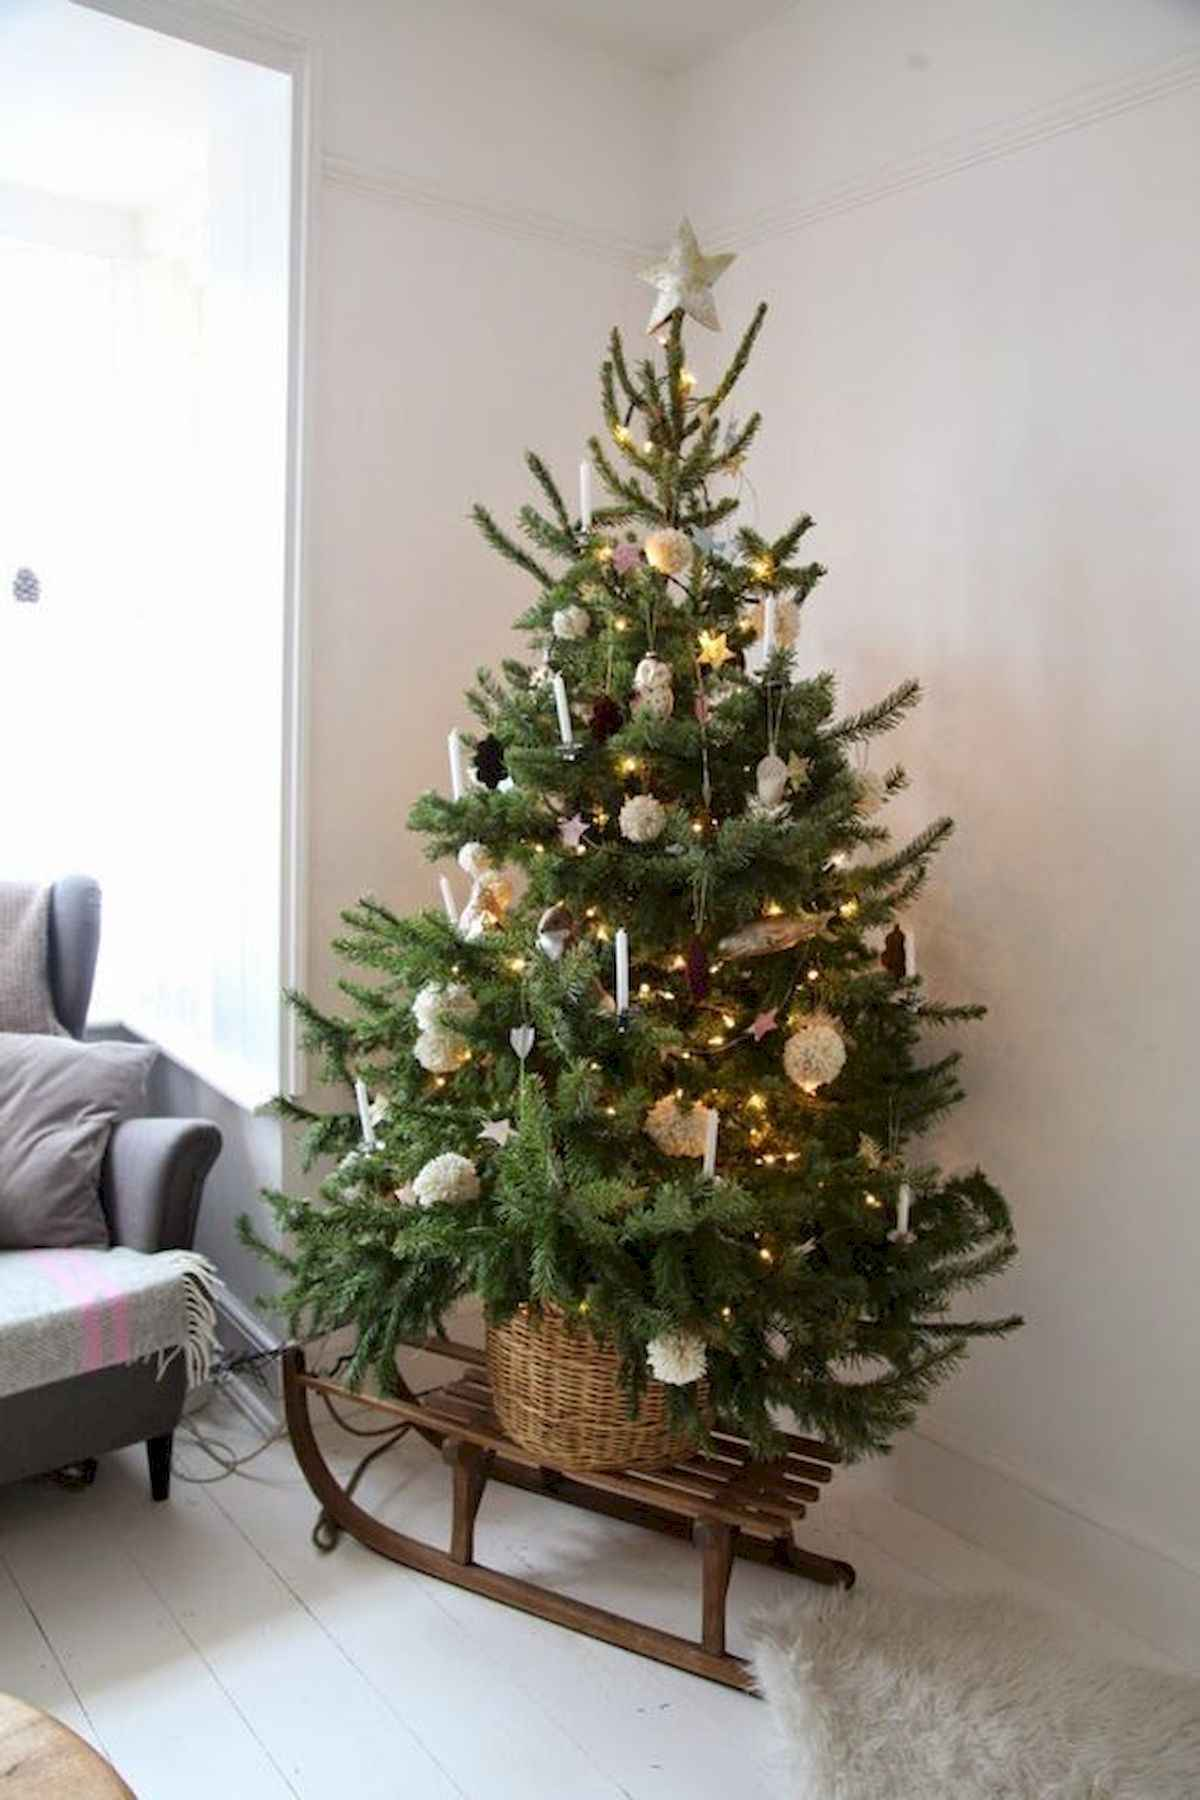 60 awesome christmas tree decorations ideas (50)